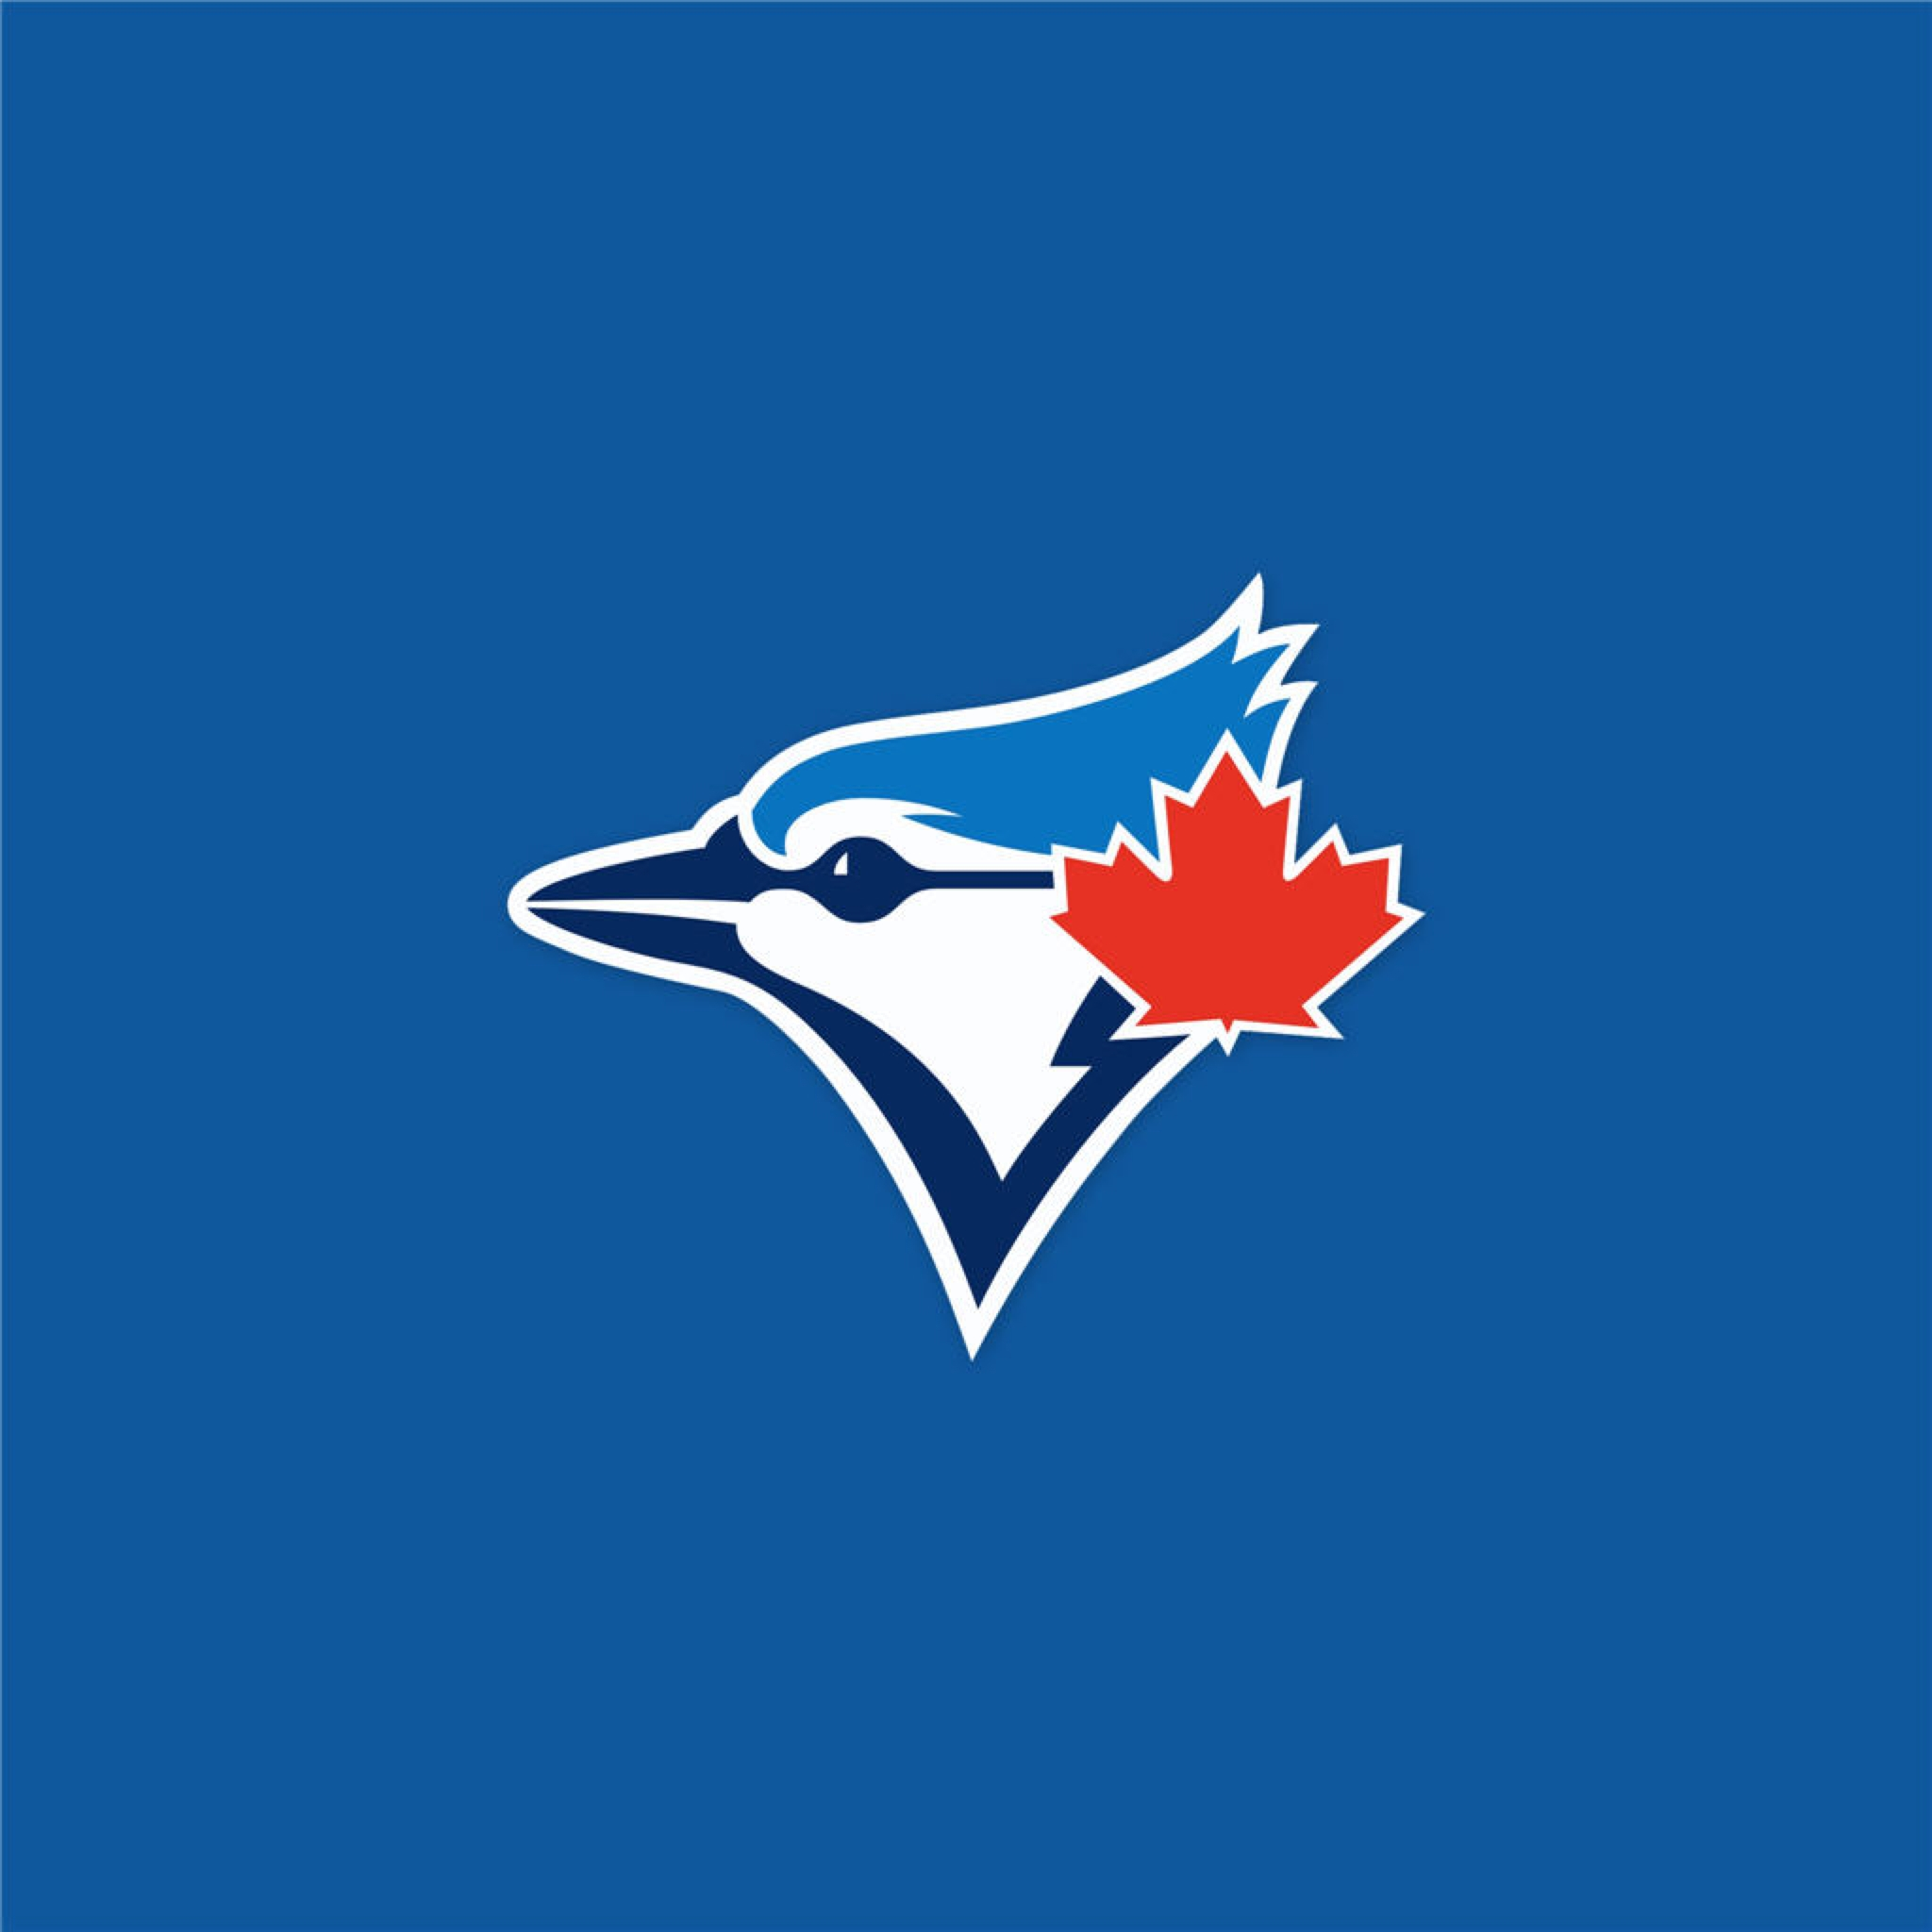 Toronto Blue Jays iPad 3 Wallpaper and iPad 4 Wallpaper 2048x2048